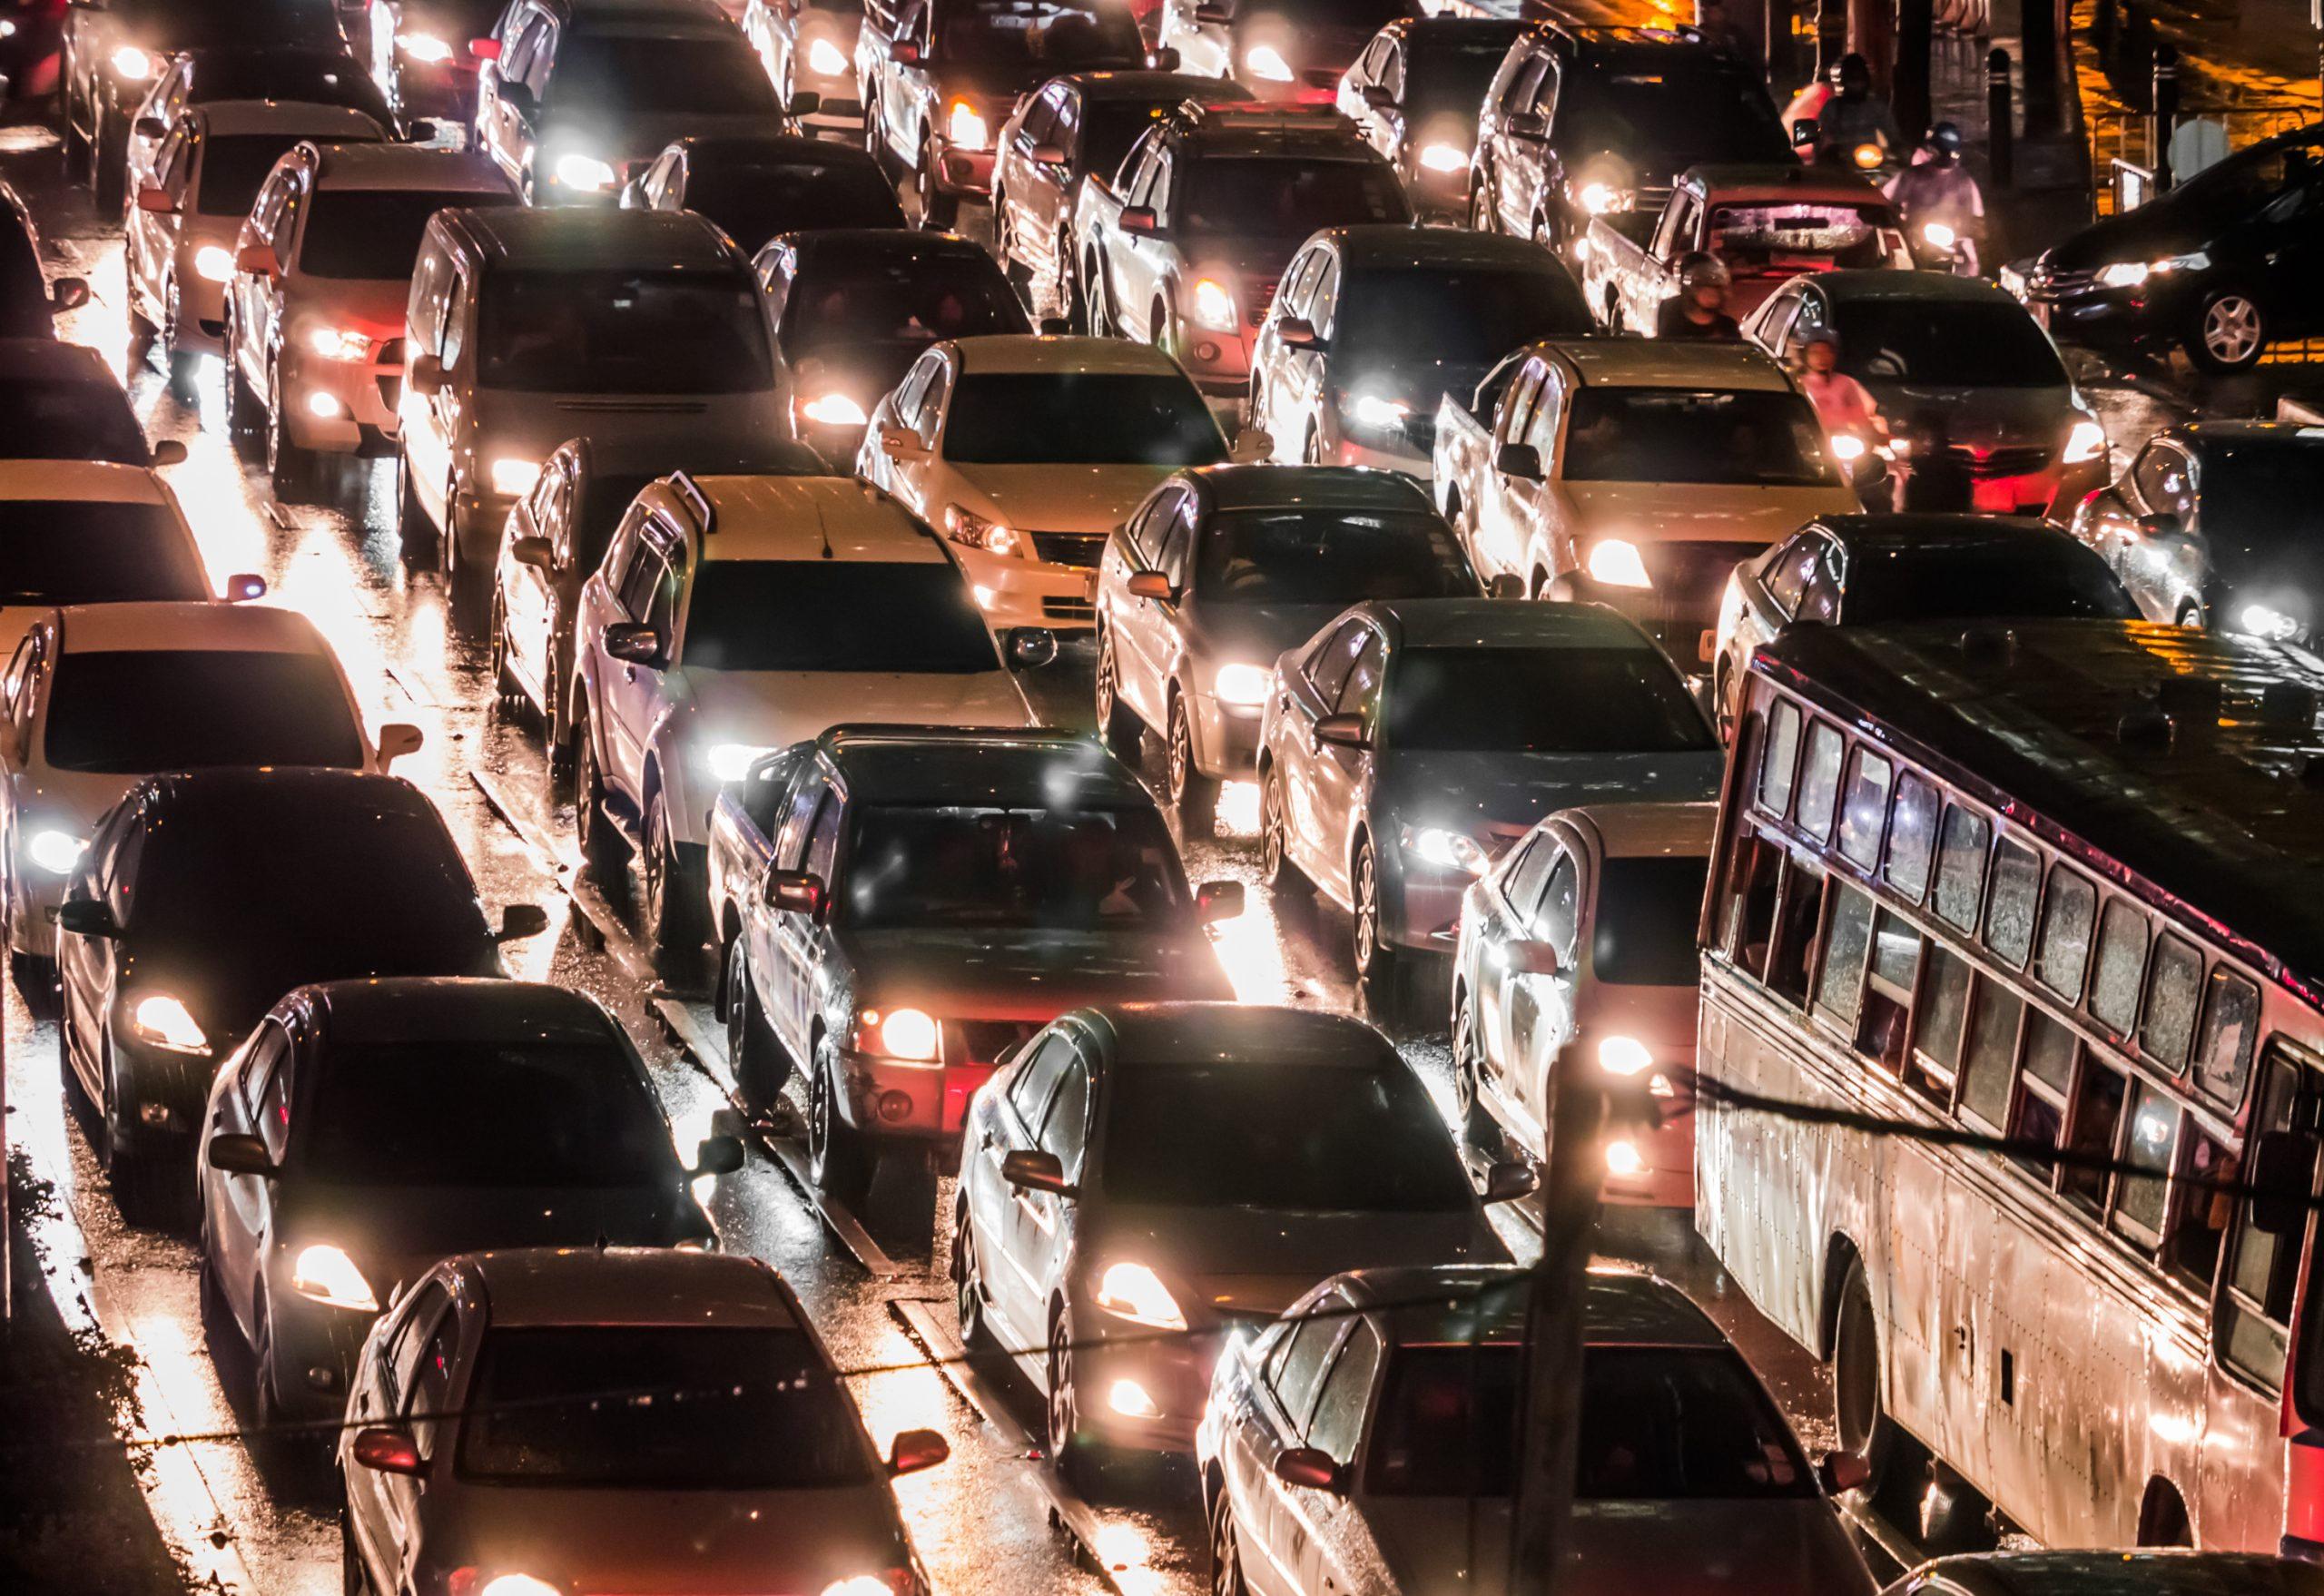 Motorists urged to use apps to avoid congested roads